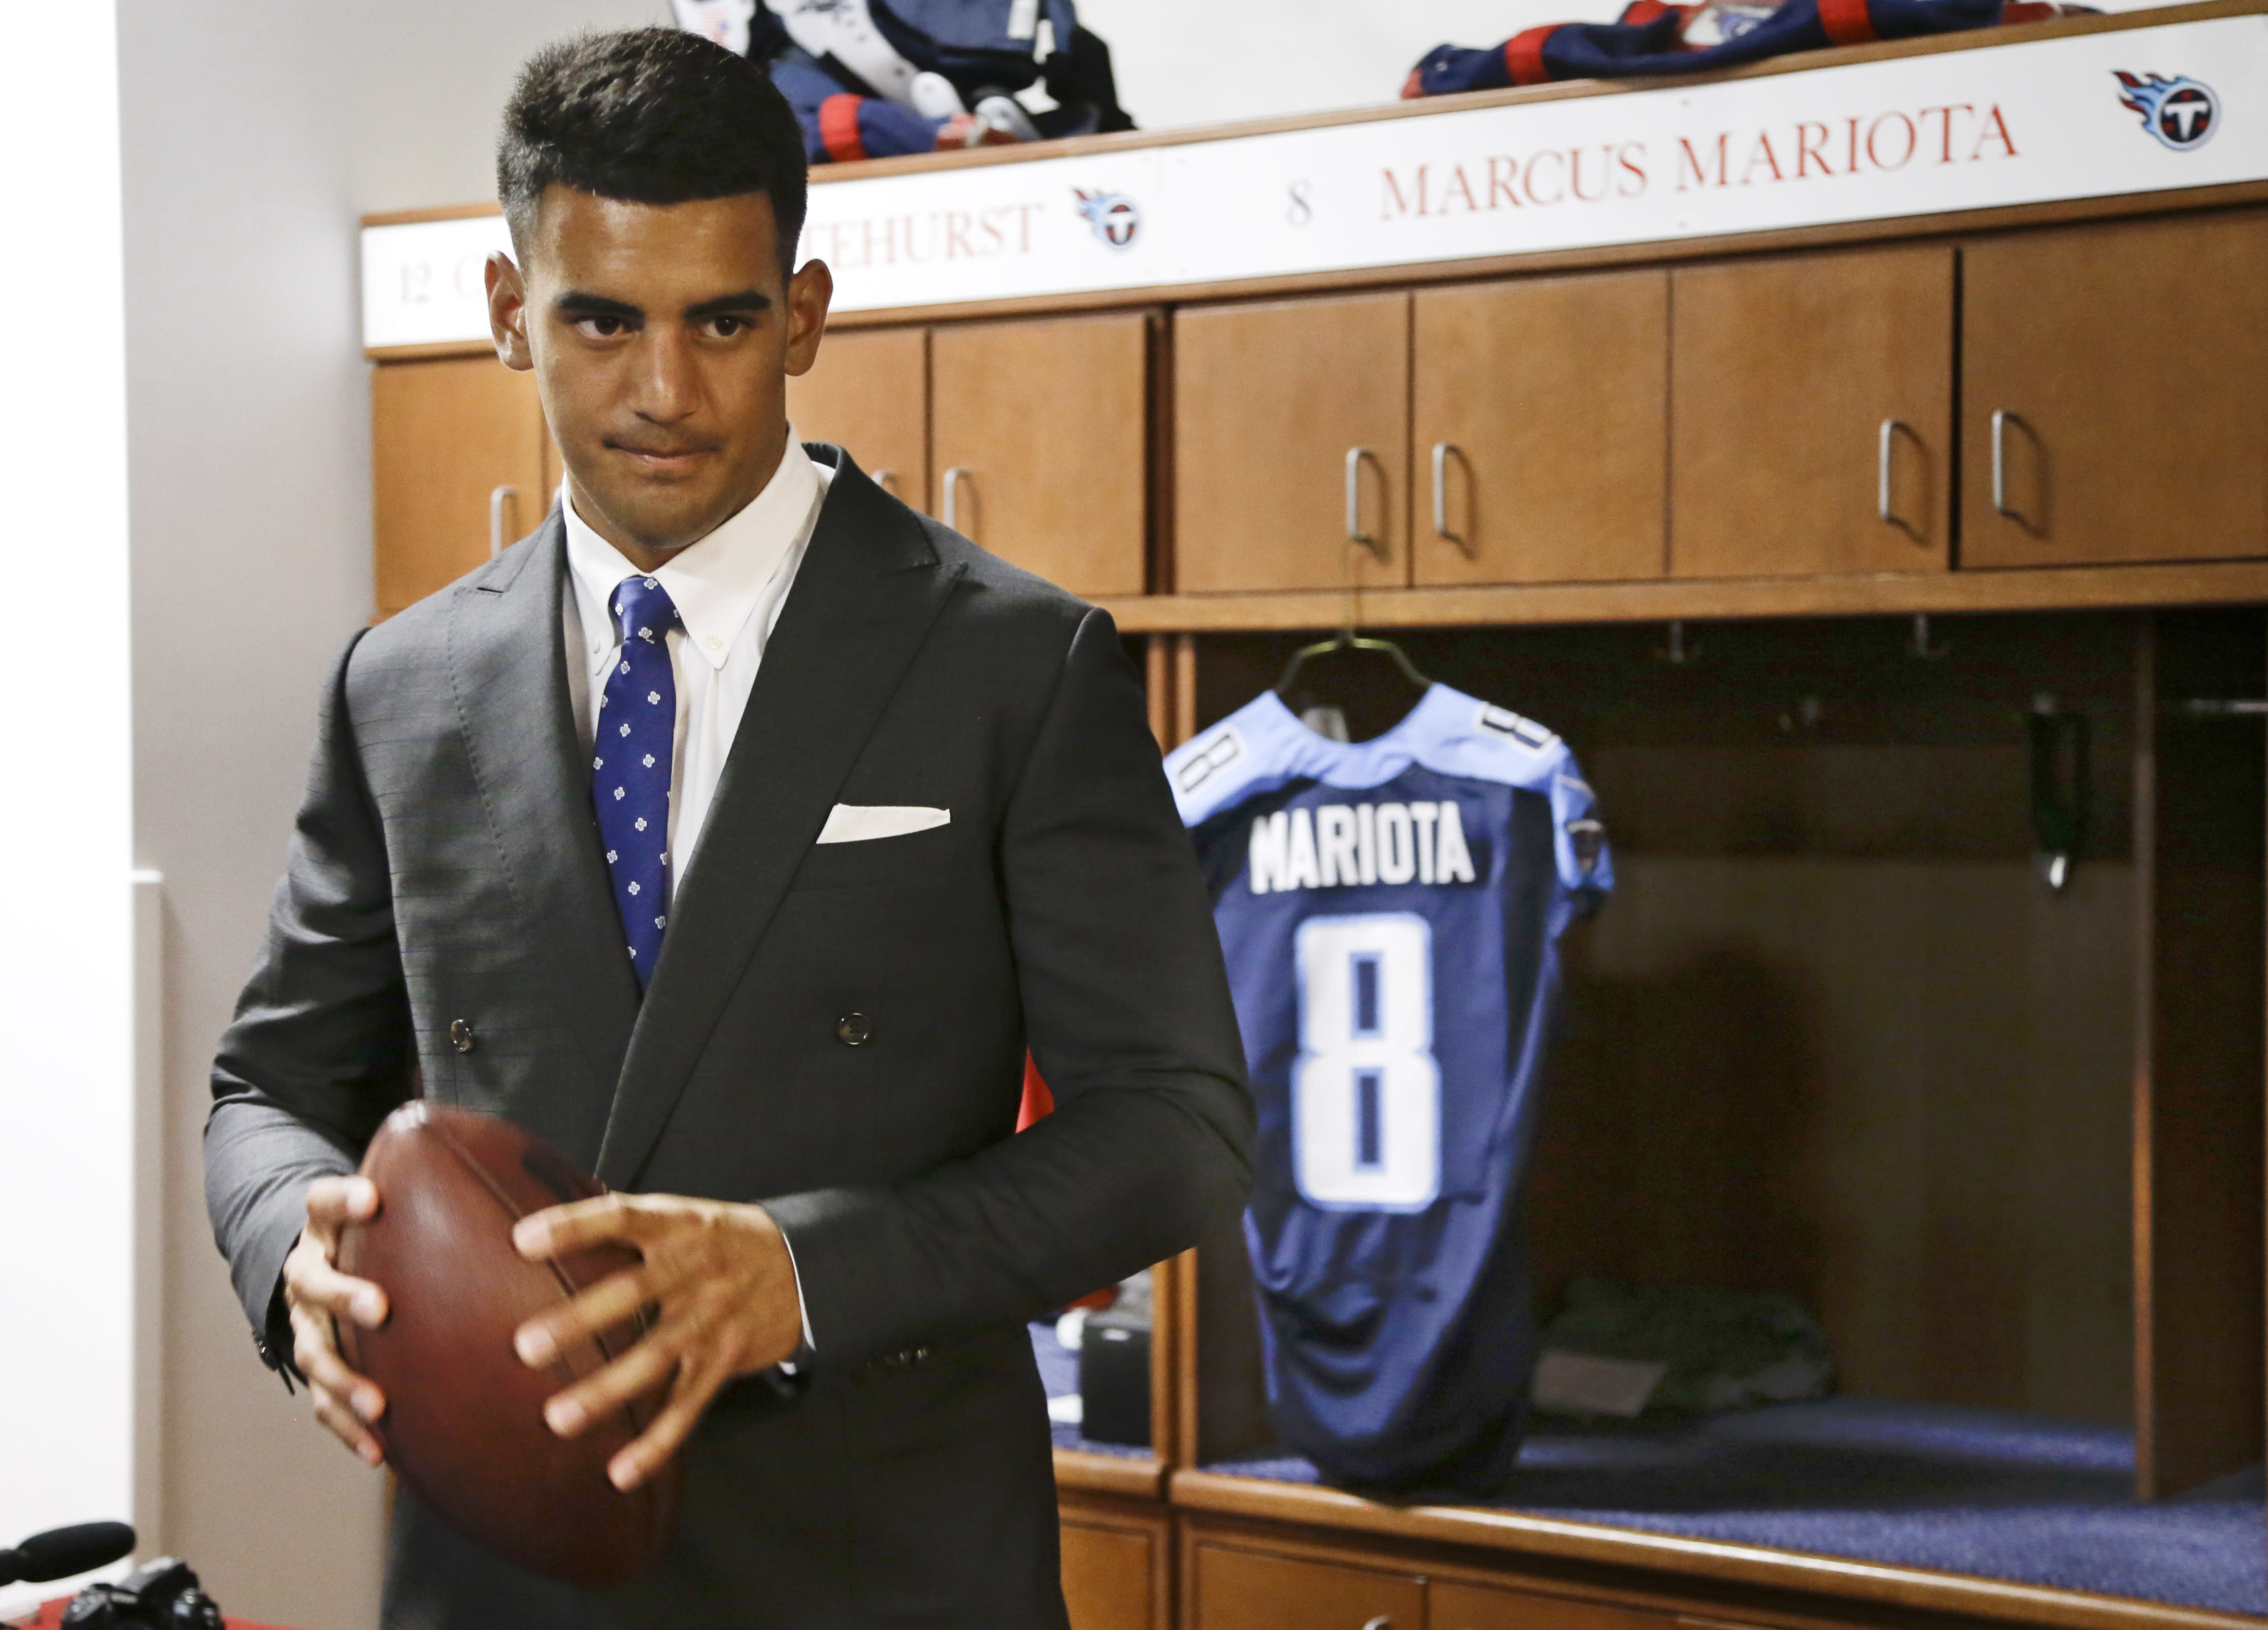 Mariota eager to get to work, Titans now have to make QB fit